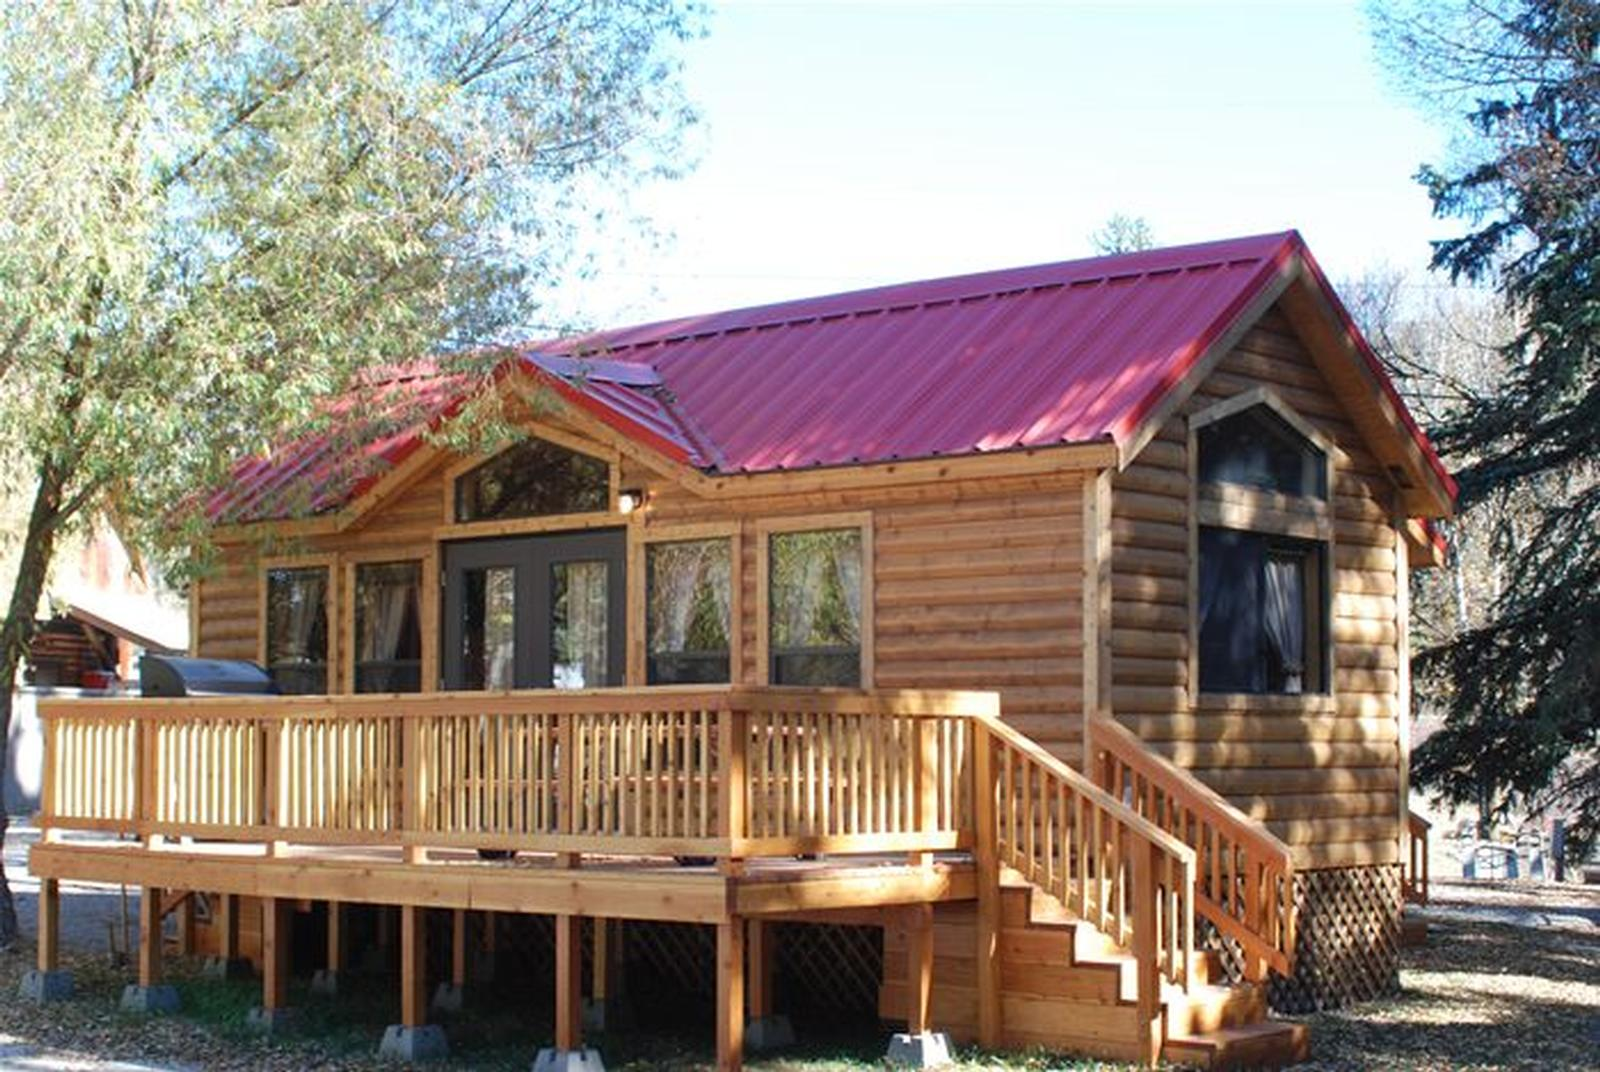 wood lodge luxury breckenridge cottages houses log home best pinterest on images cabin